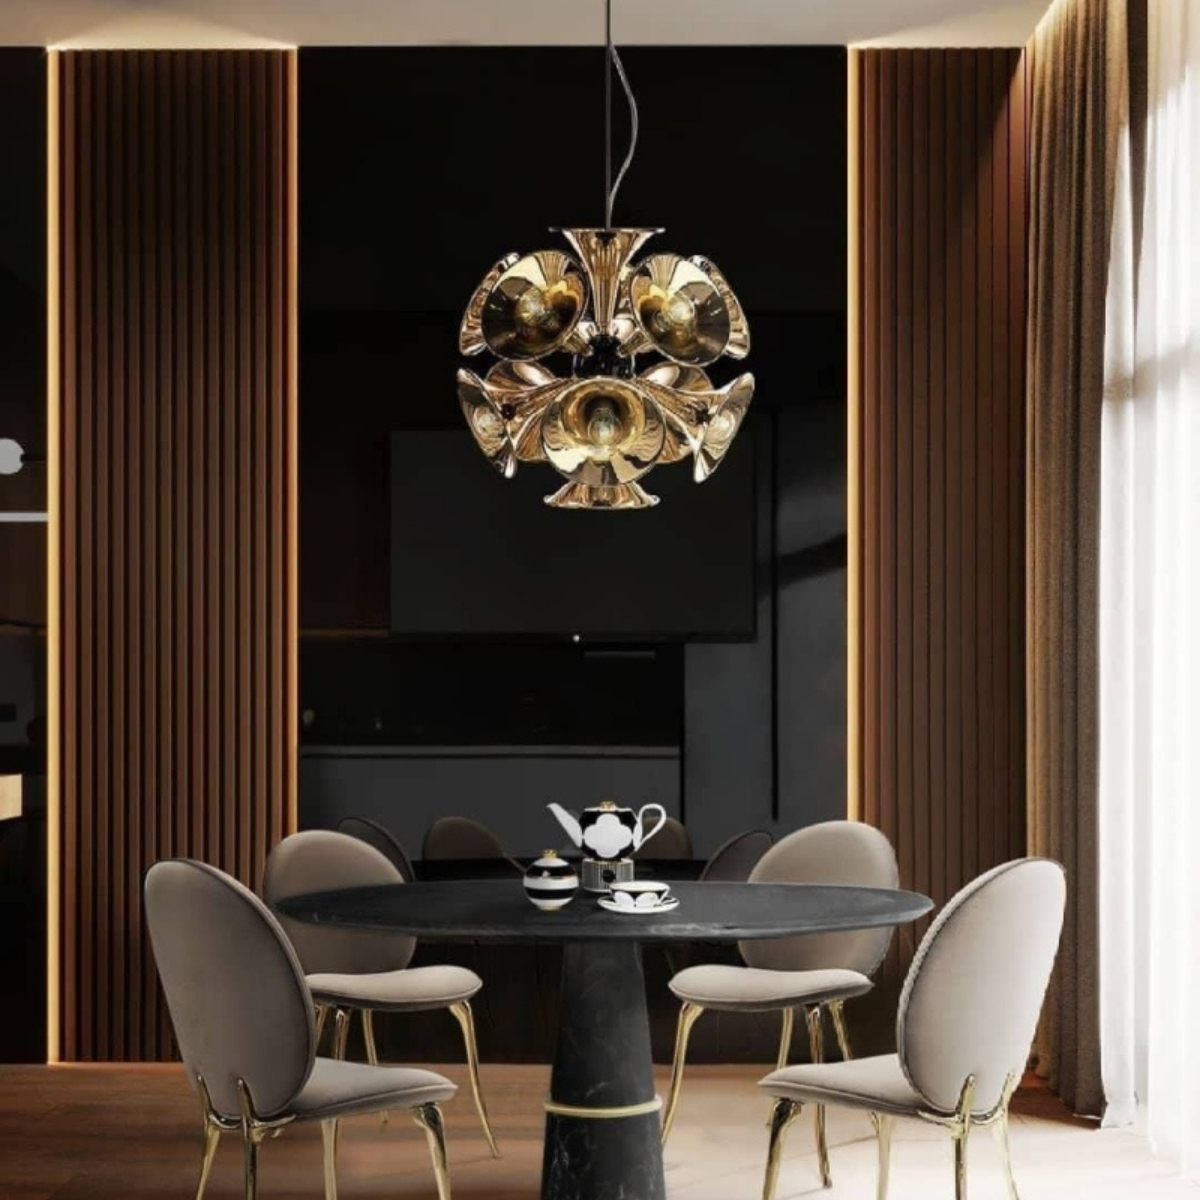 Dining Room Featuring Botti Pendant Lamp